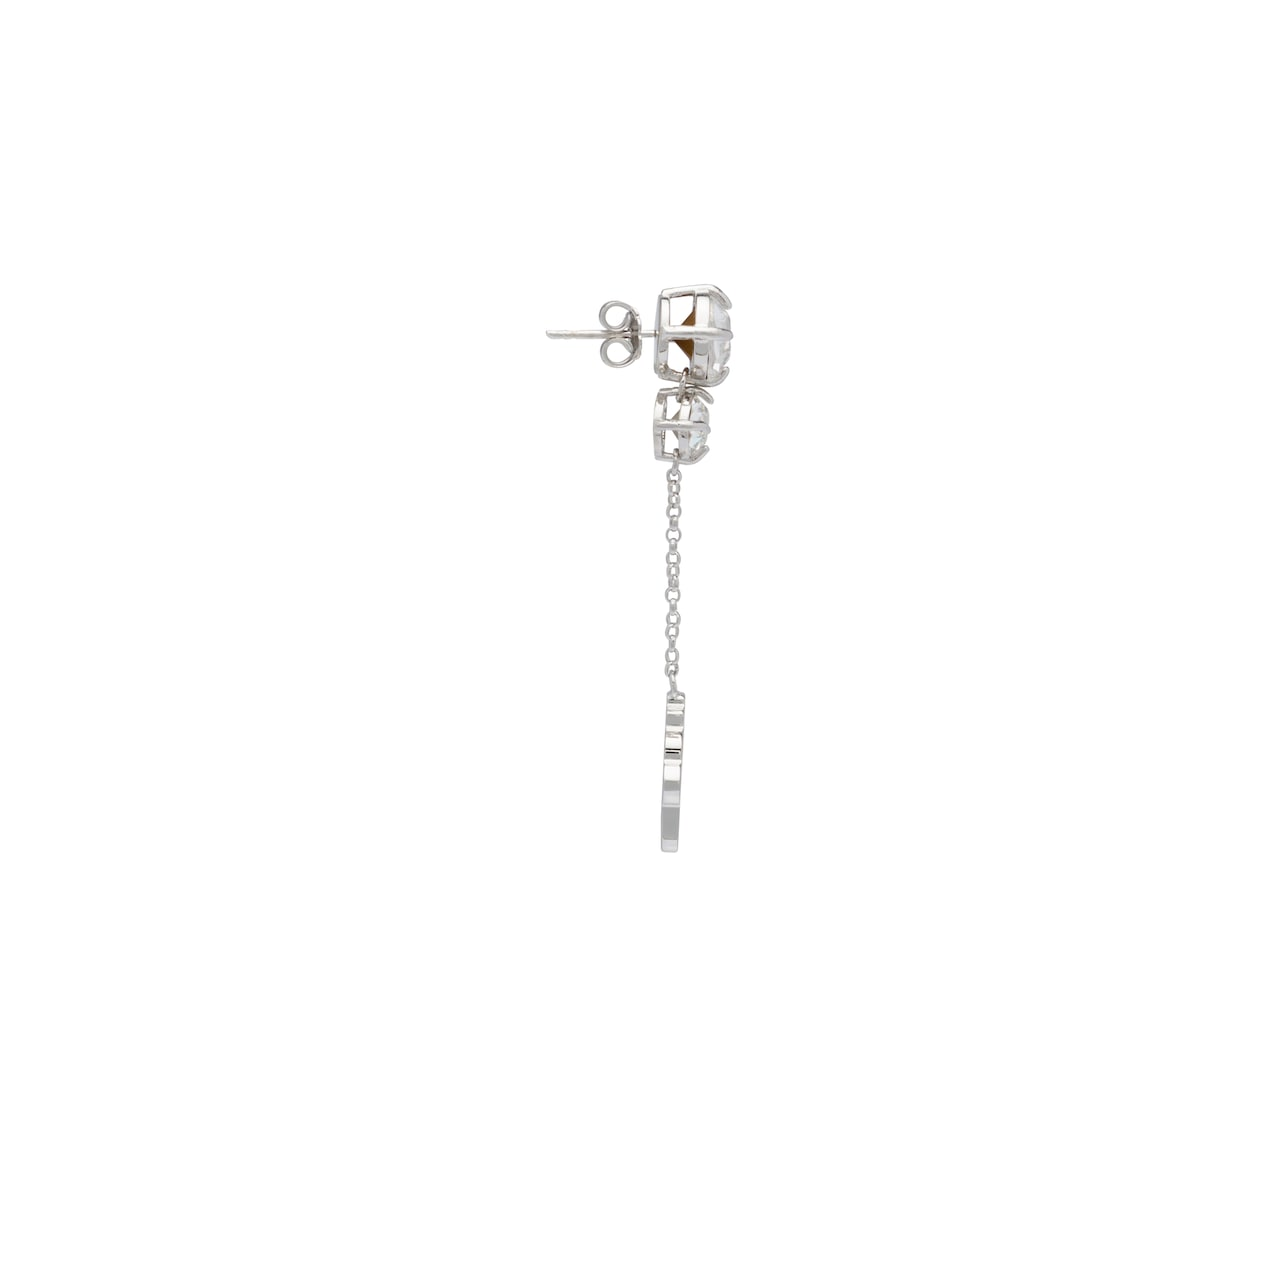 Silver earrings with enameled charm